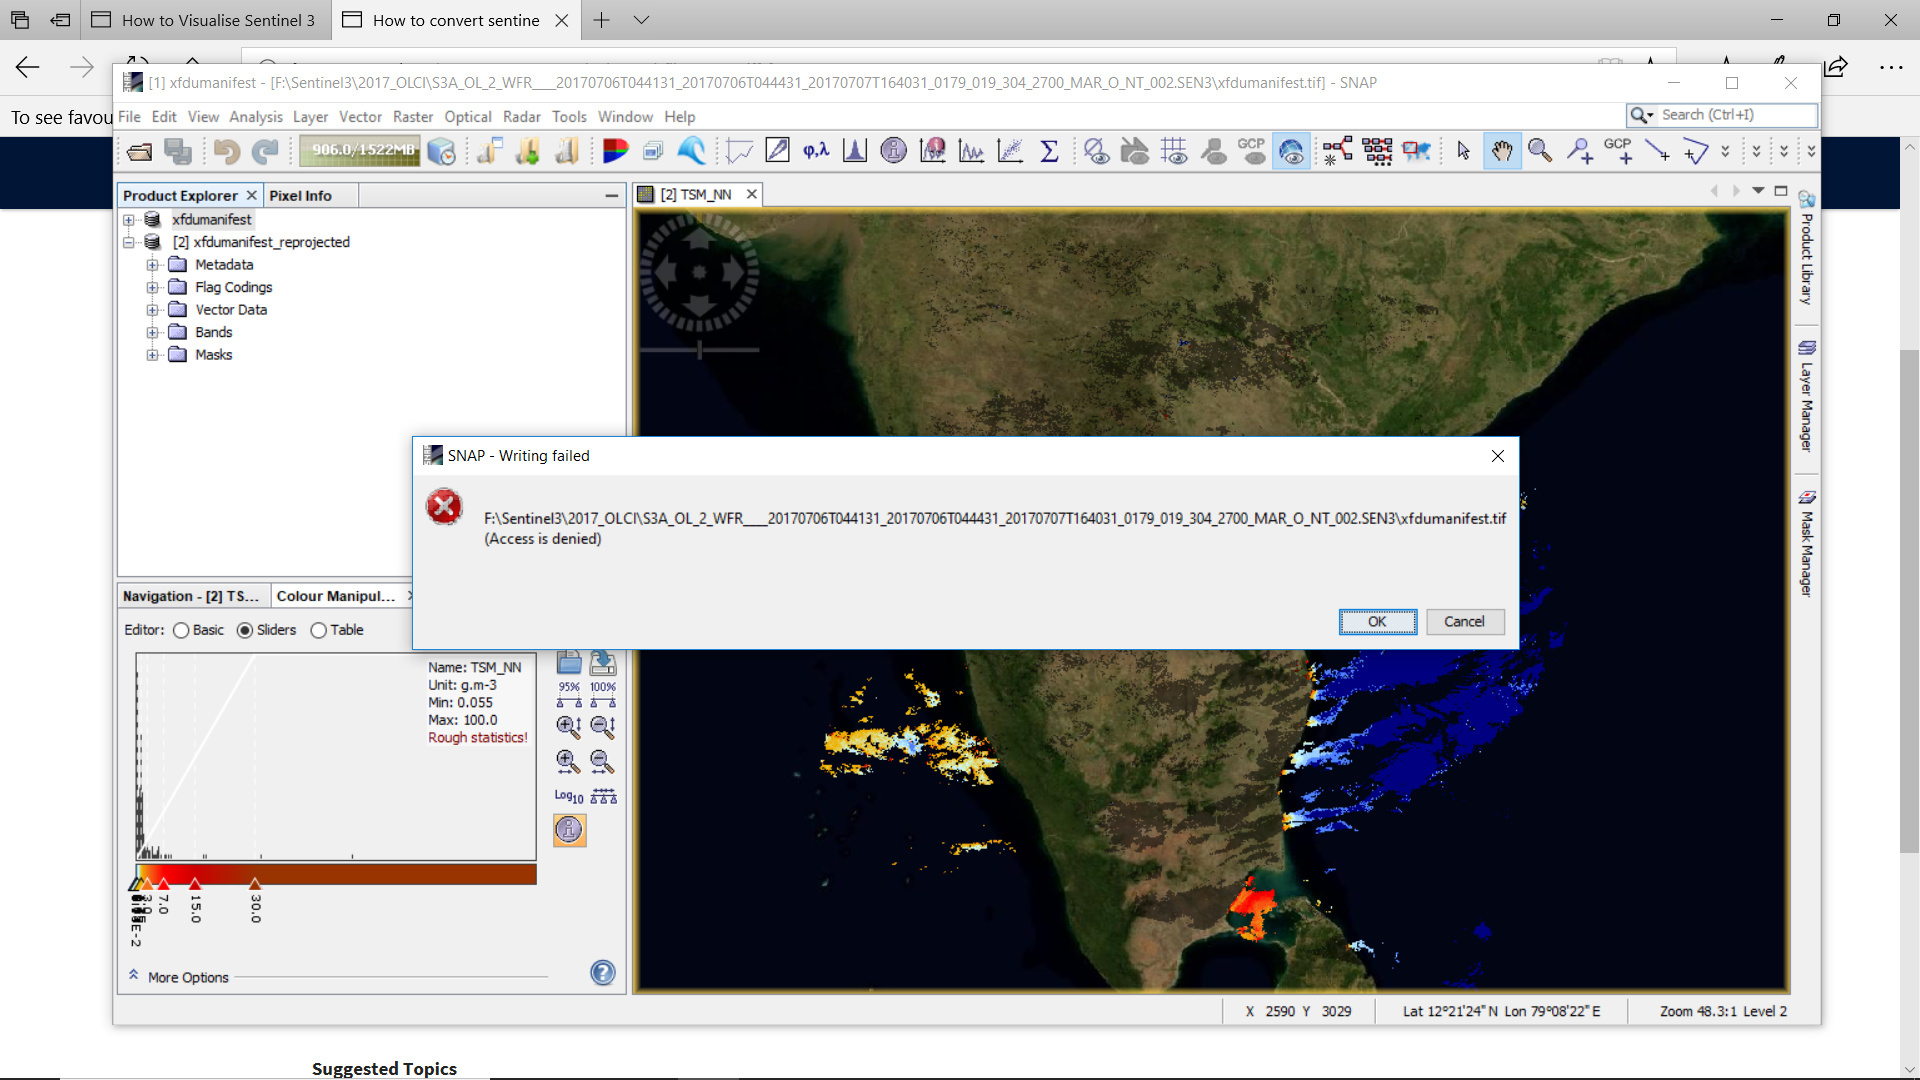 How to convert sentinel 3 xml file to GeoTiff format - s3tbx